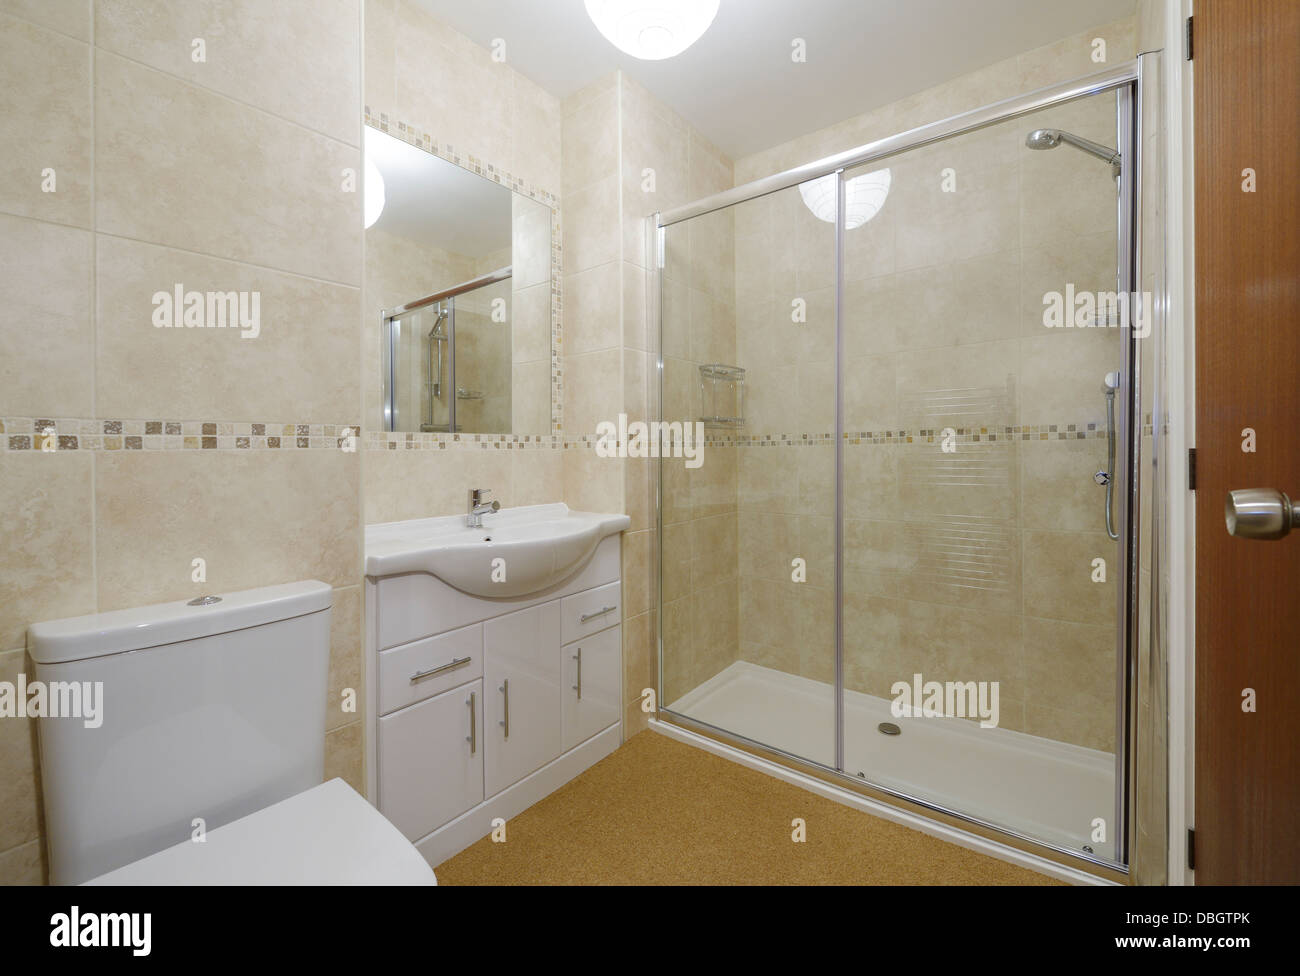 Modern Small Bathroom Modern Small Bathroom With Toilet Basin And Shower Stock Photo